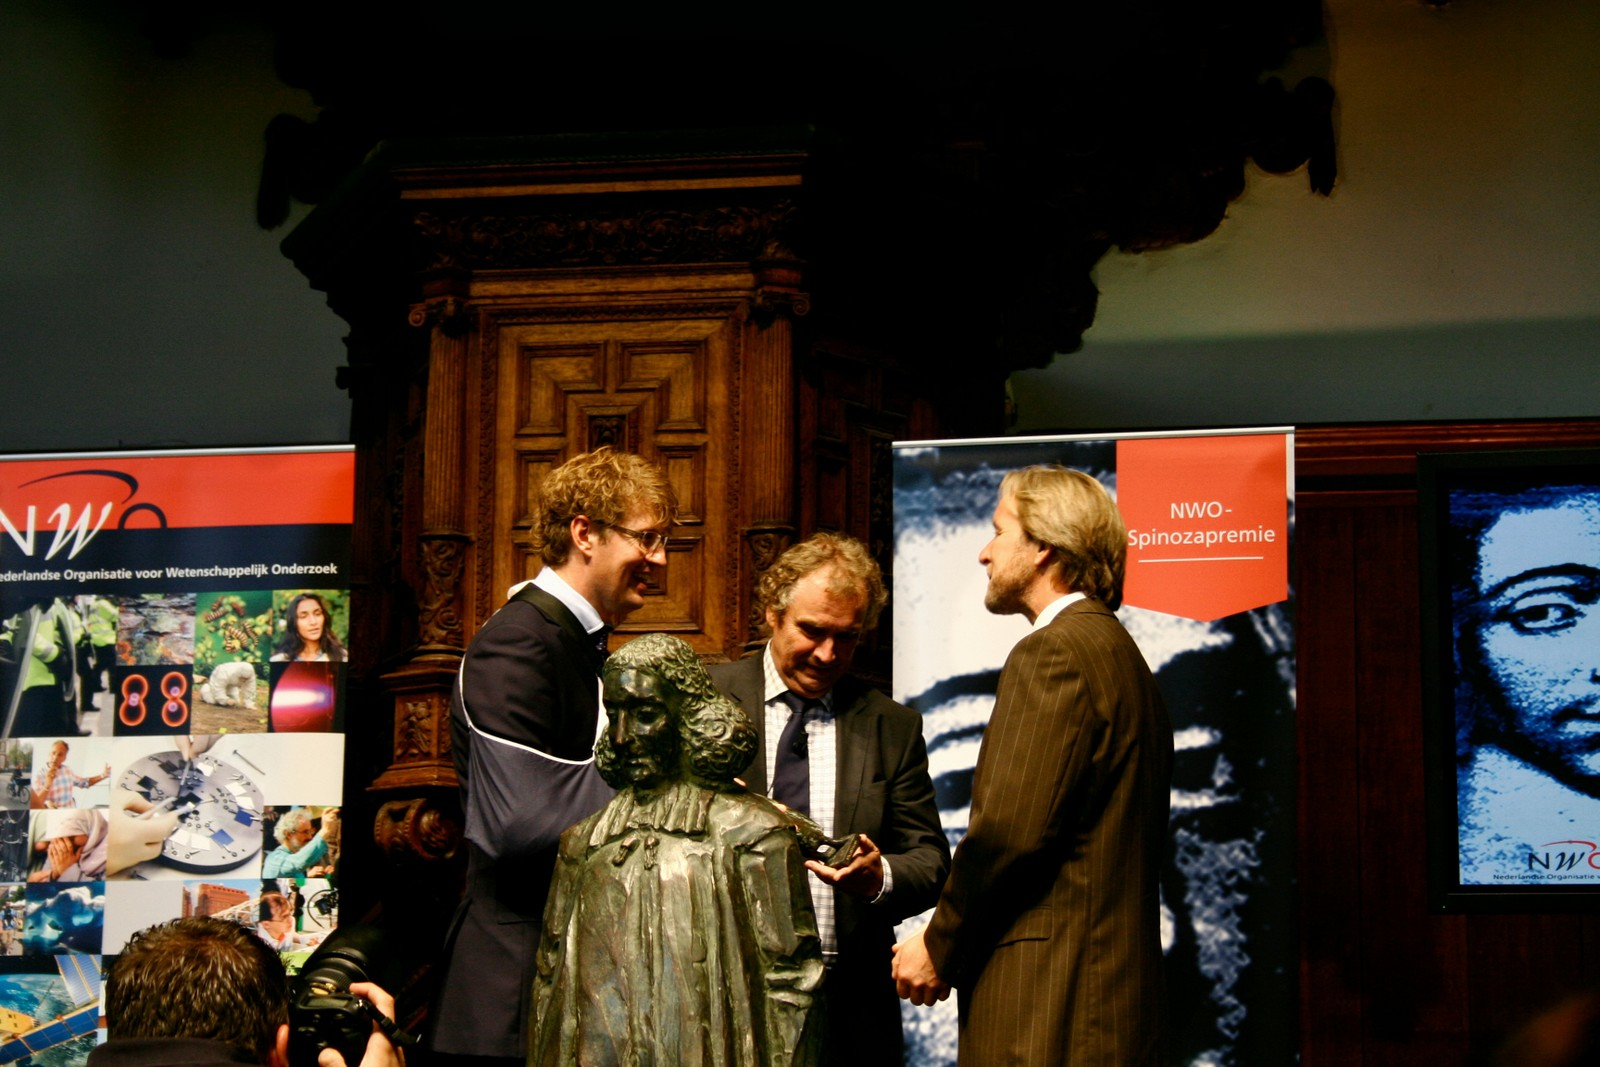 NWO Chair Jos Engelen, State Secretary for Education, Culture and Science Sander Dekker and Piek Vossen